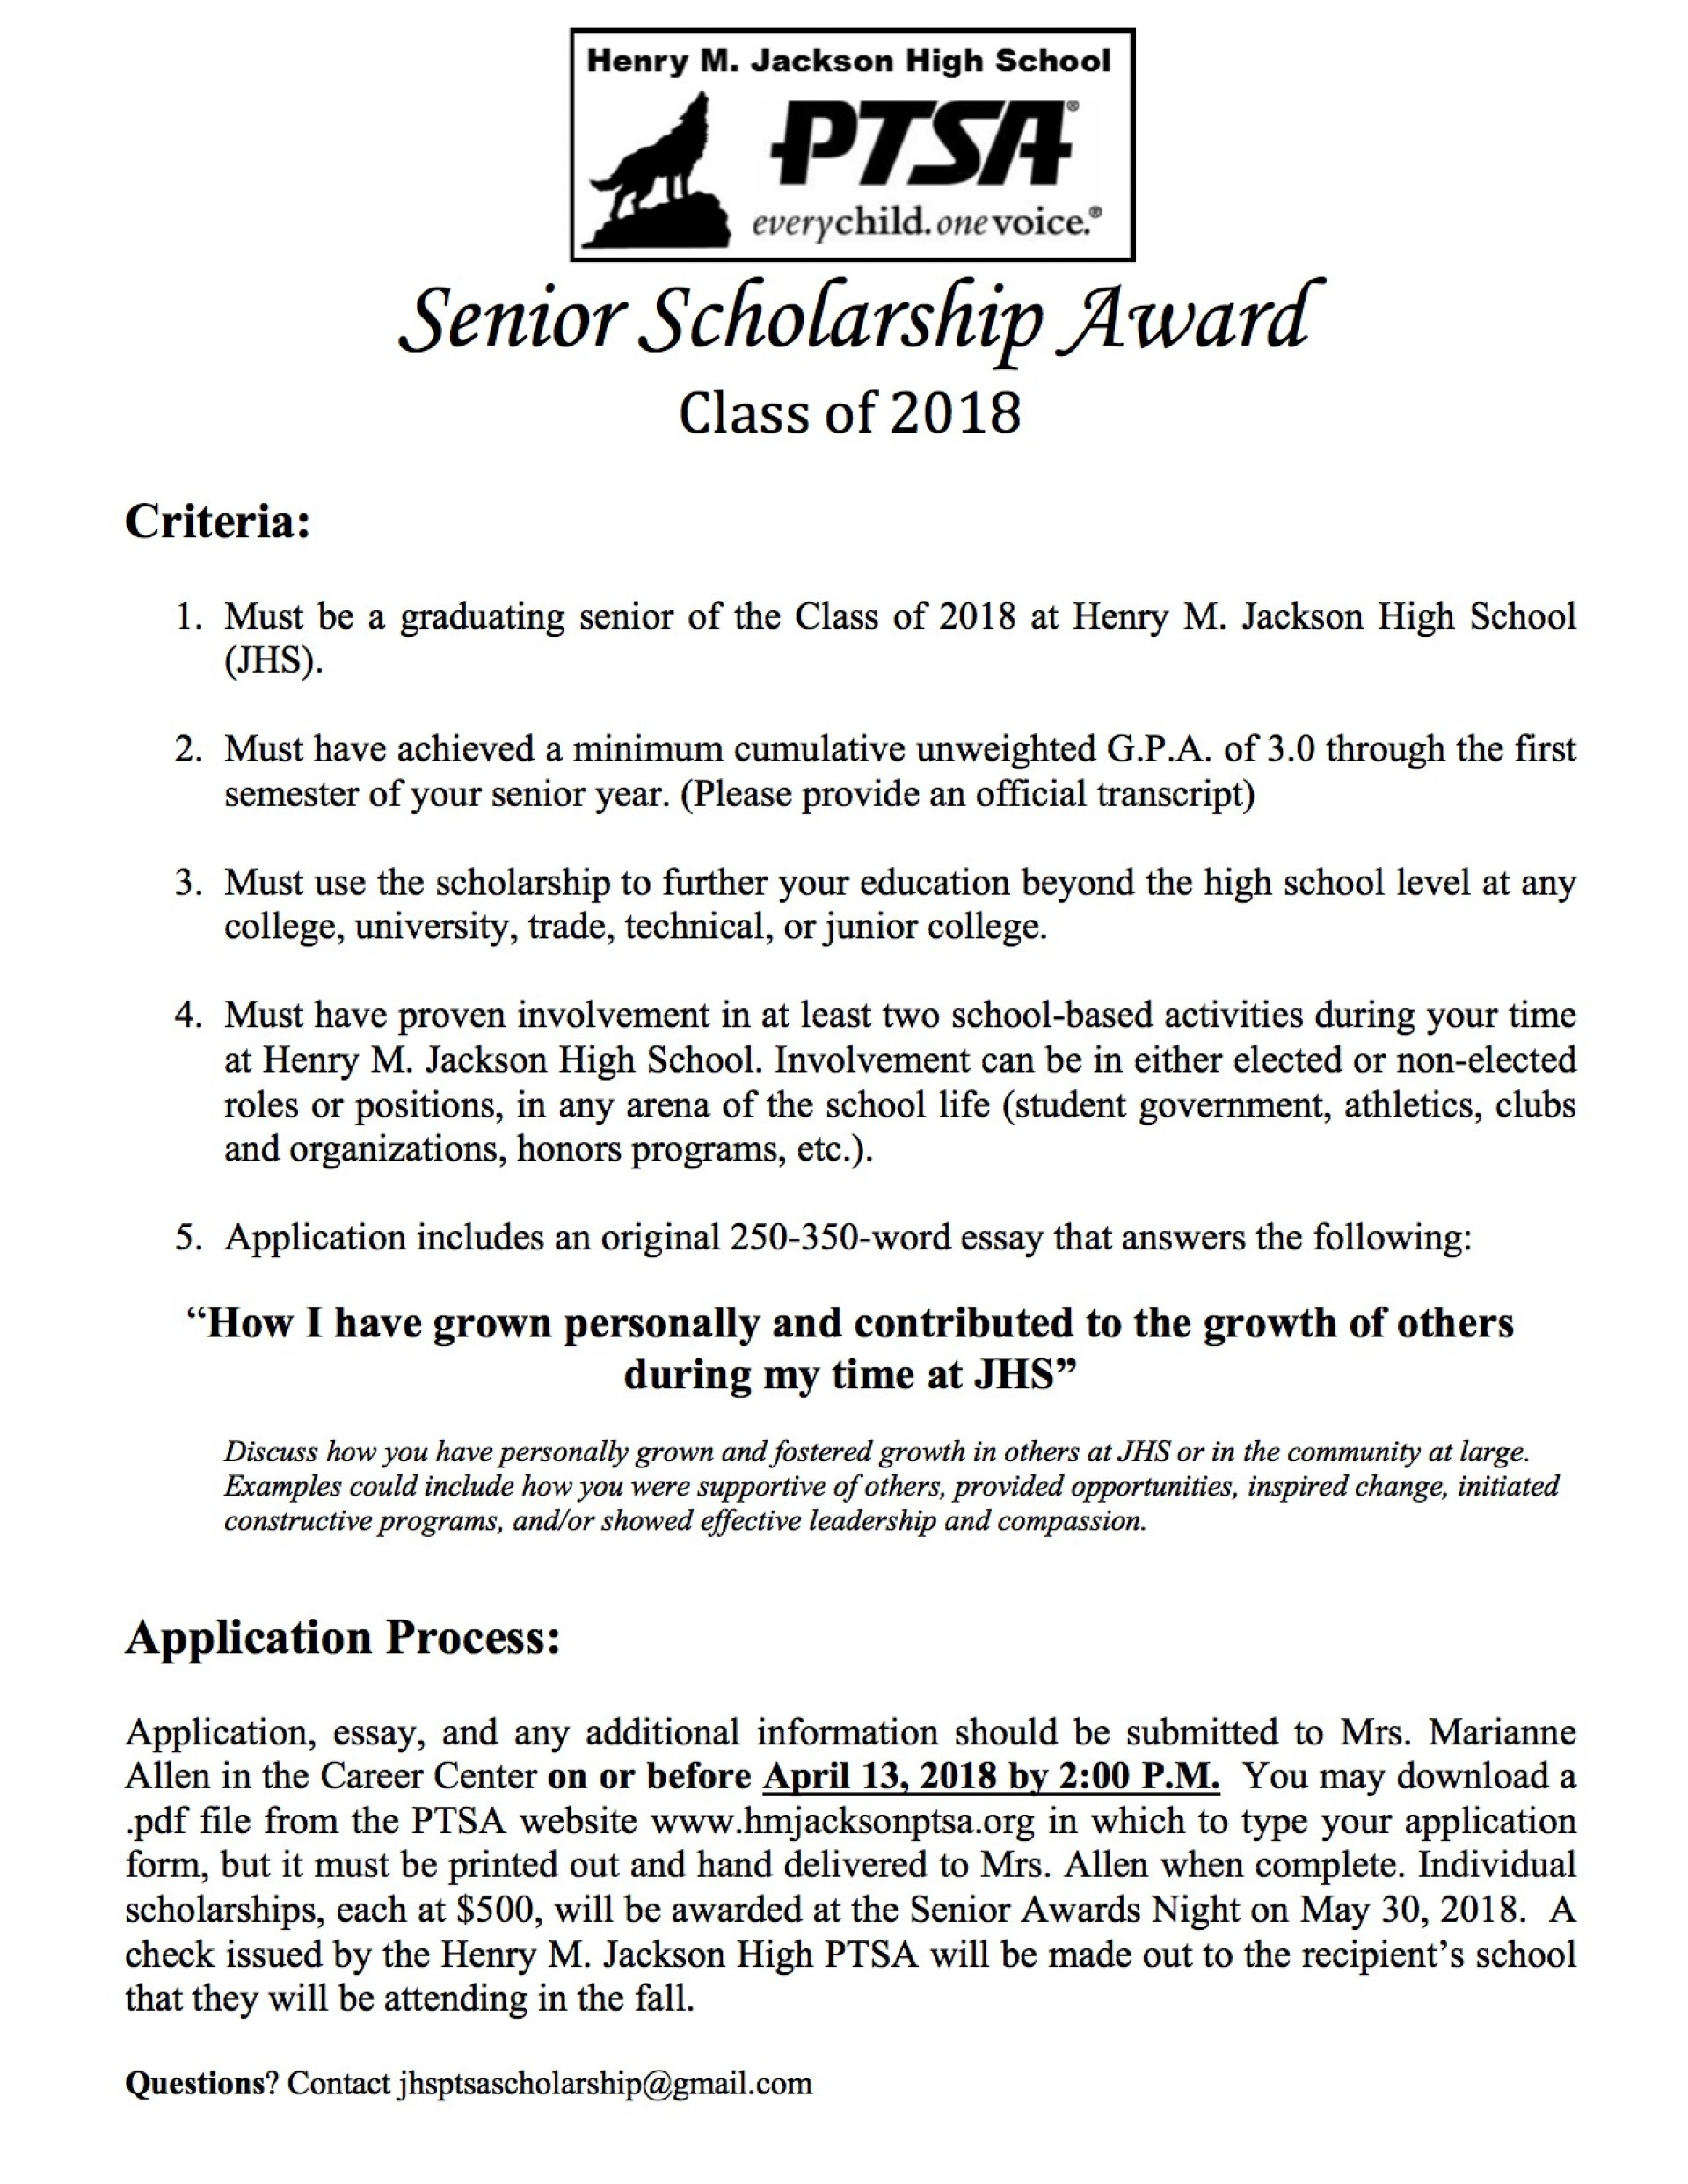 007 Senior Scholarships Henry M Jackson Ptsa No Essay For College Students Scholarship Application 201 With Unbelievable Without Requirements Essays Required 1920